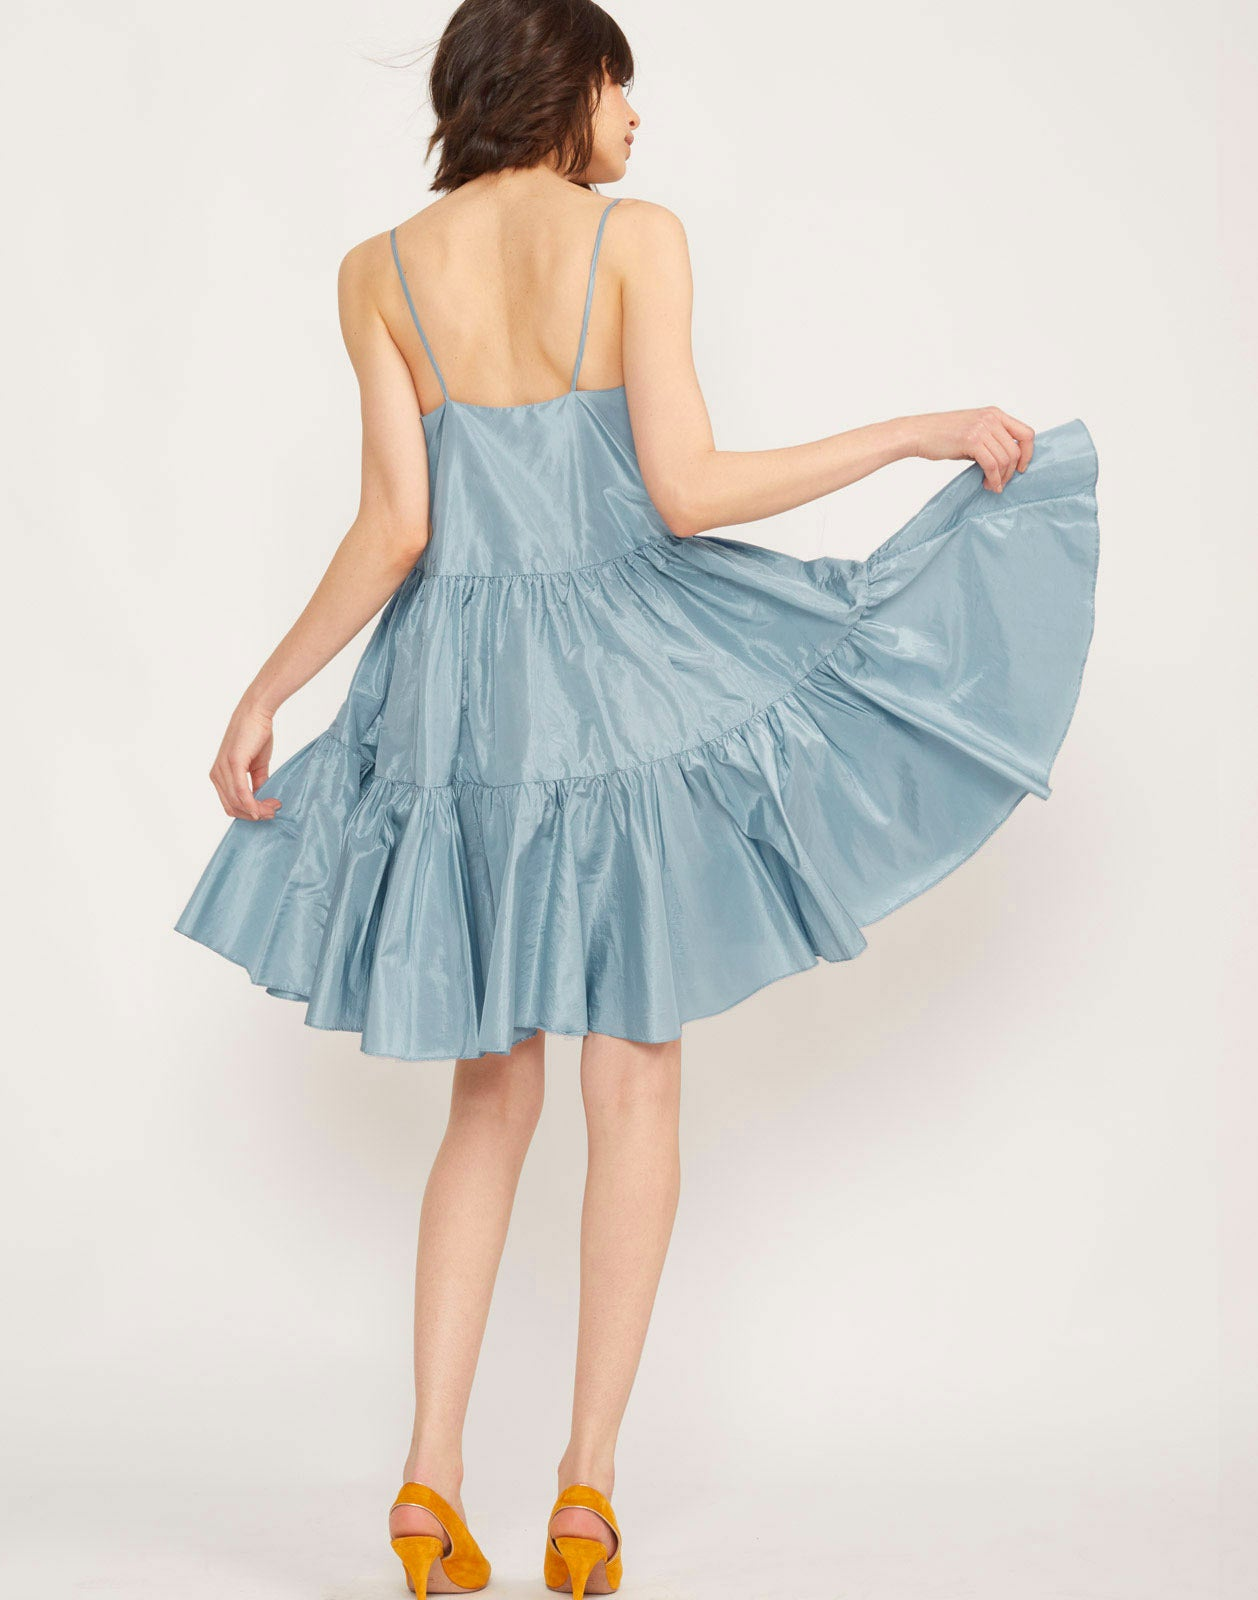 Back view of the Sky Tiered Swing Dress